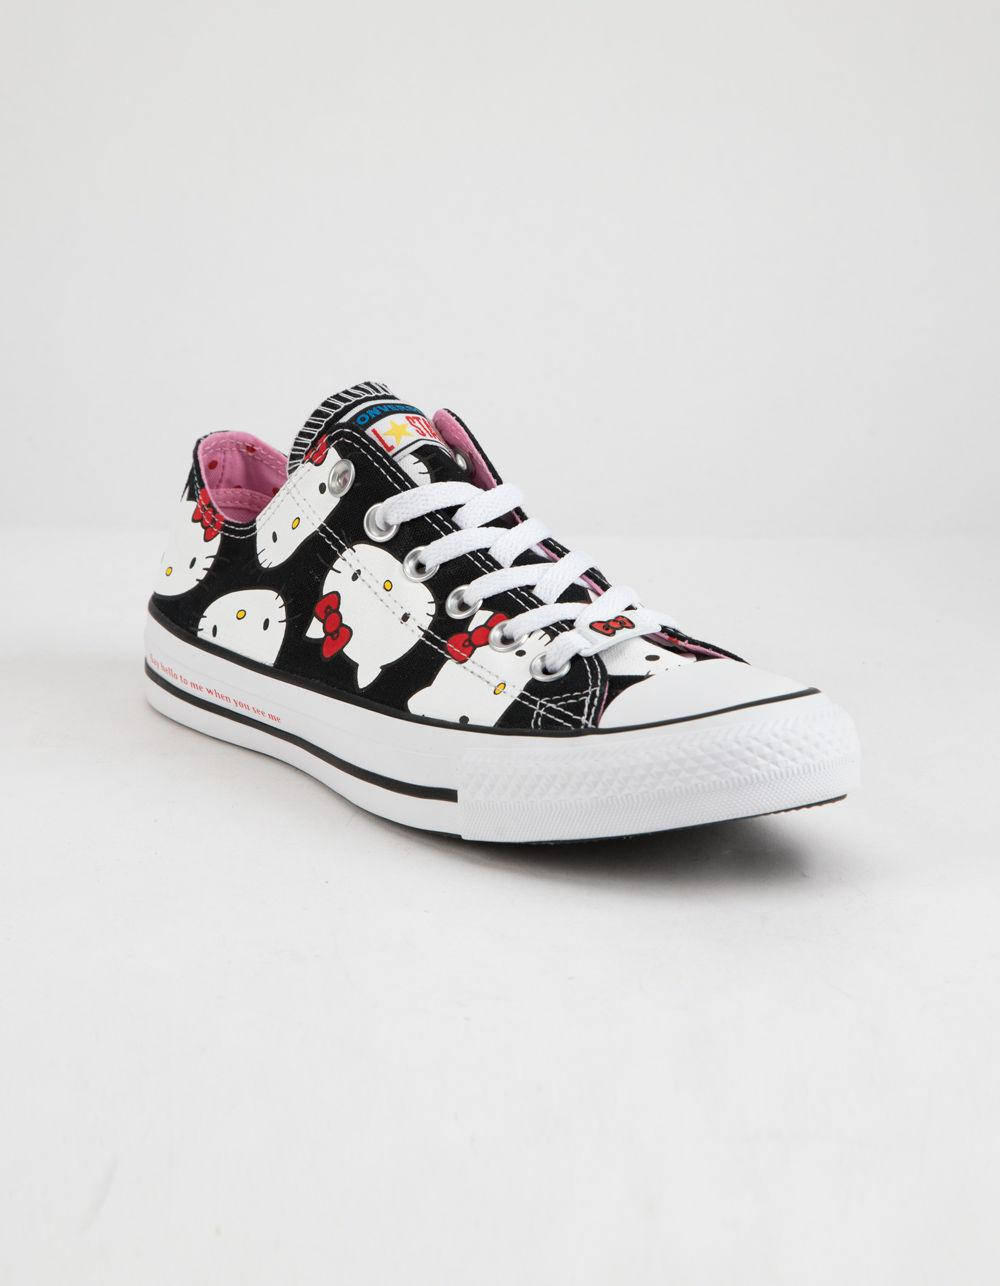 6c4eb76aac Lyst - Converse X Hello Kitty Chuck Taylor All Star Black   Prism ...